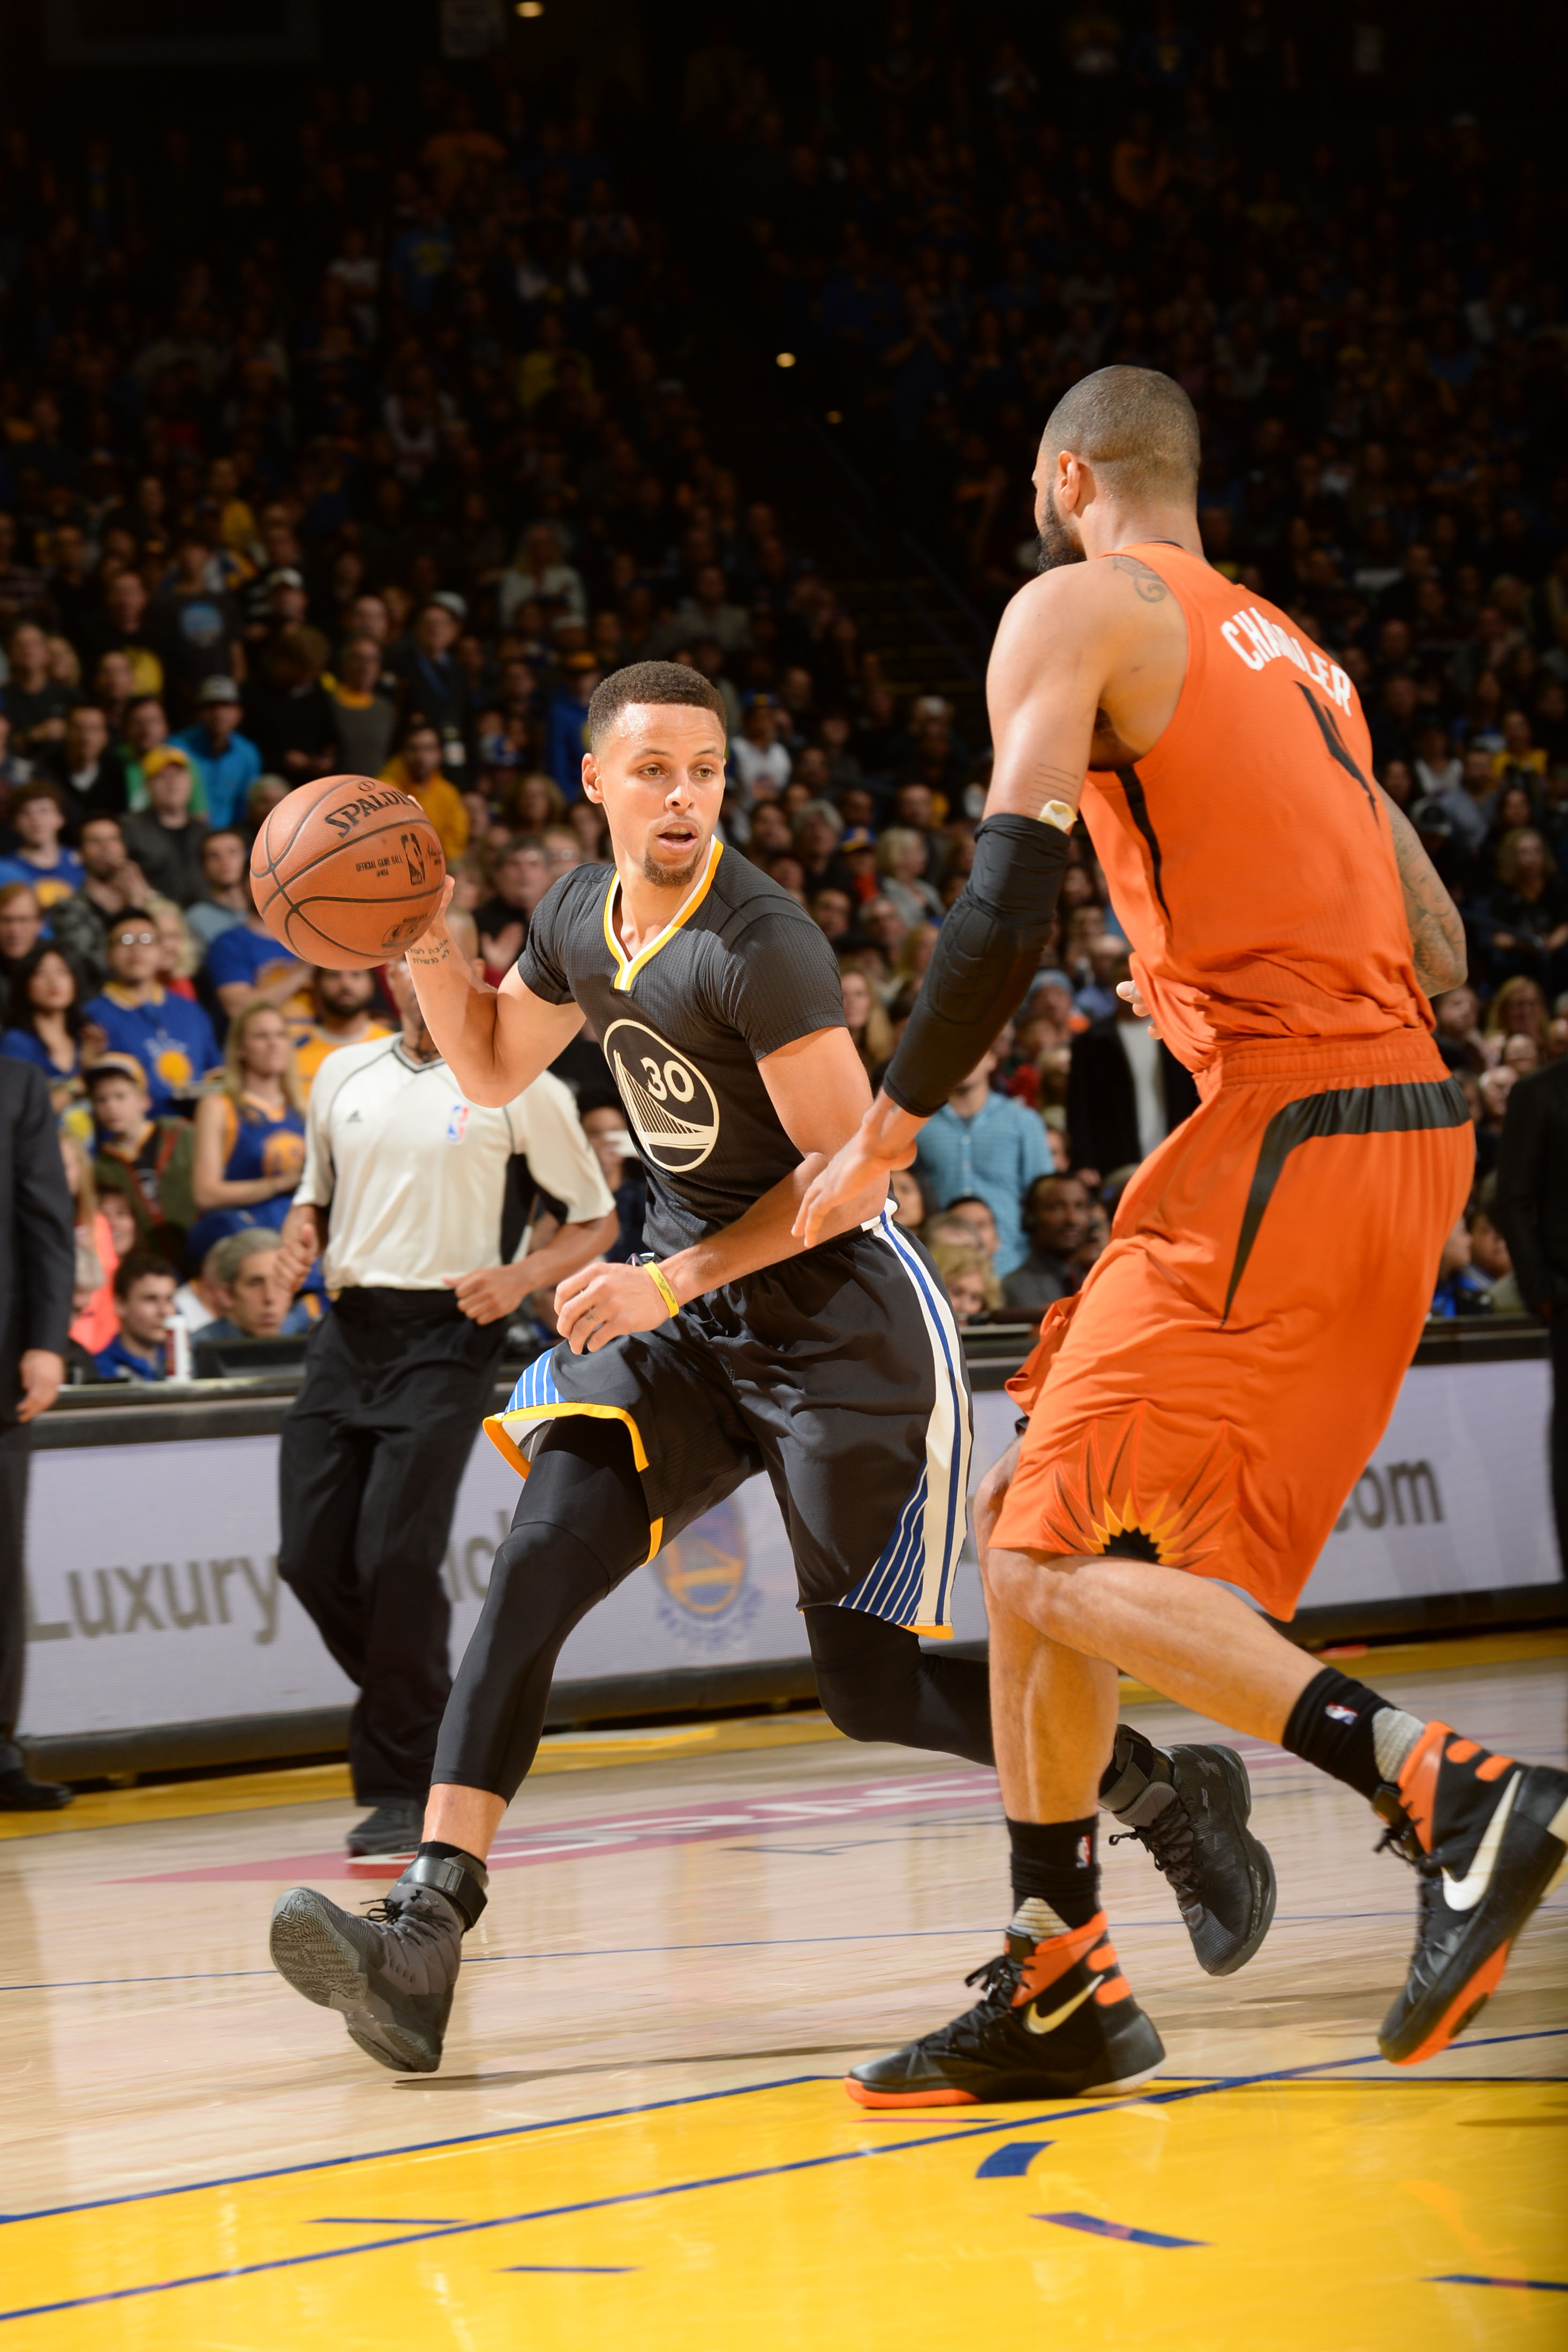 OAKLAND, CA - MARCH 12: Stephen Curry #30 of the Golden State Warriors drives to the basket against the Phoenix Suns during the game on March 12, 2016 at Oracle Arena in Oakland, California. (Photo by Noah Graham/NBAE via Getty Images)